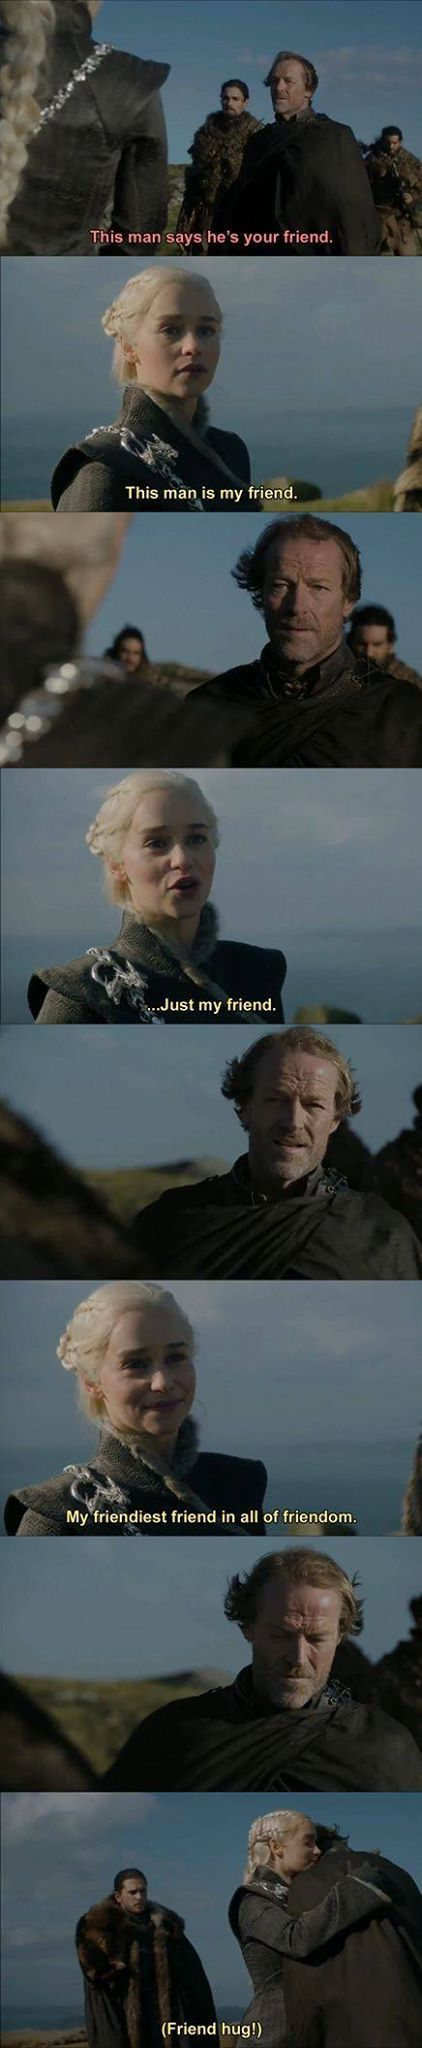 25 best ideas about jorah game of thrones on pinterest game of - Daenerys And Jorah Game Of Thrones If I Ever Met Iain Glen Ser Jorah I D Give Him A